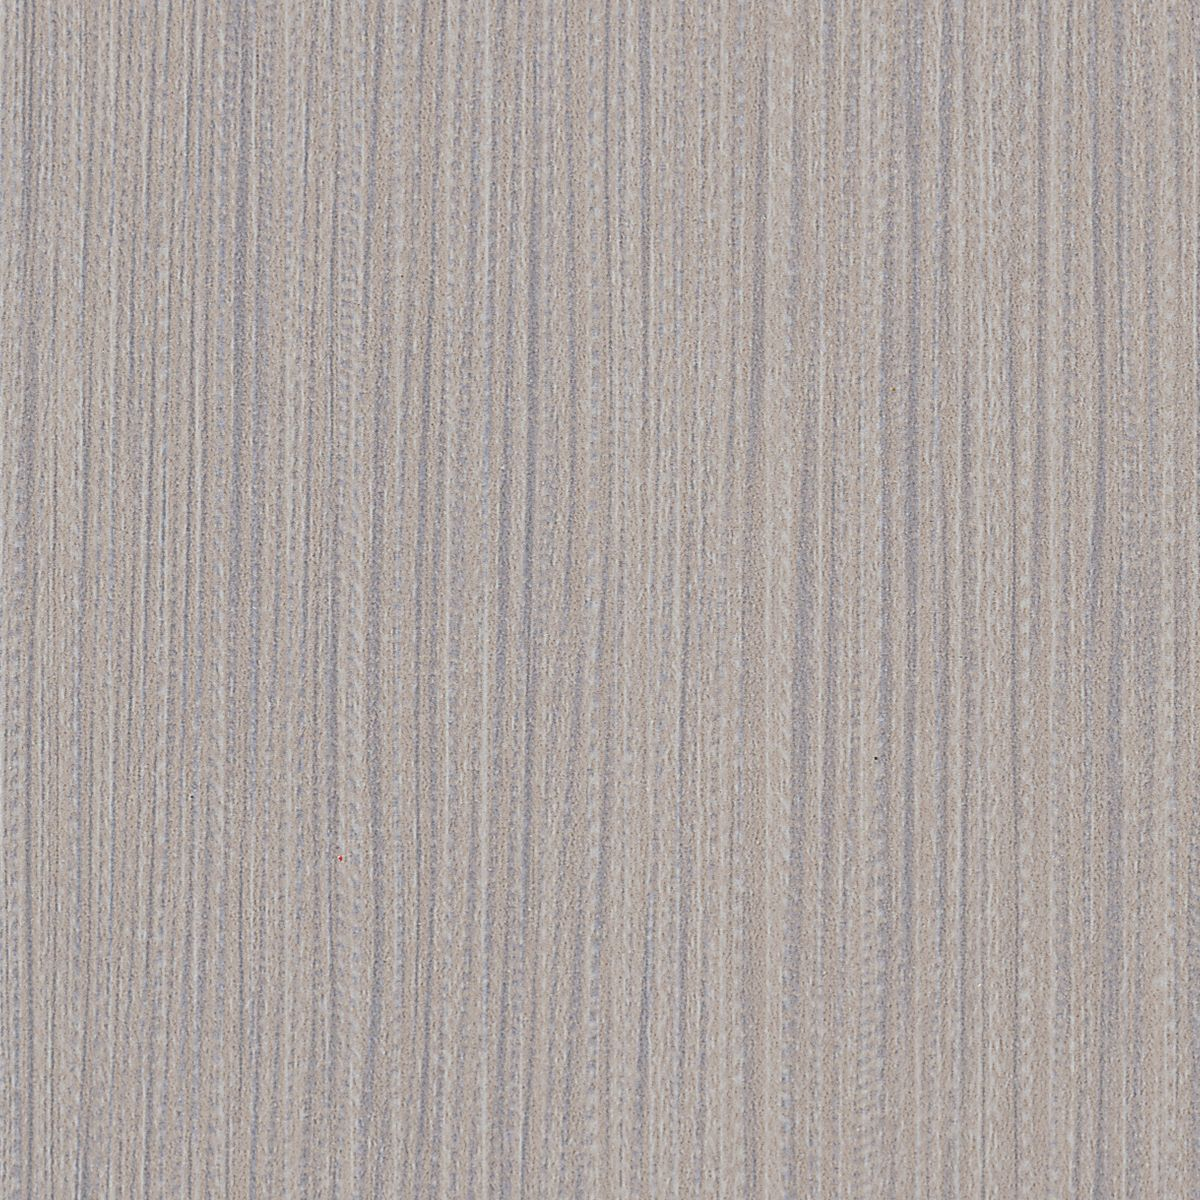 Find The Best Prices On Sarum Twill Laminate, Installation Tools U0026 Supplies  From Cabinetmaker Warehouse, Your Online Laminate Superstore.